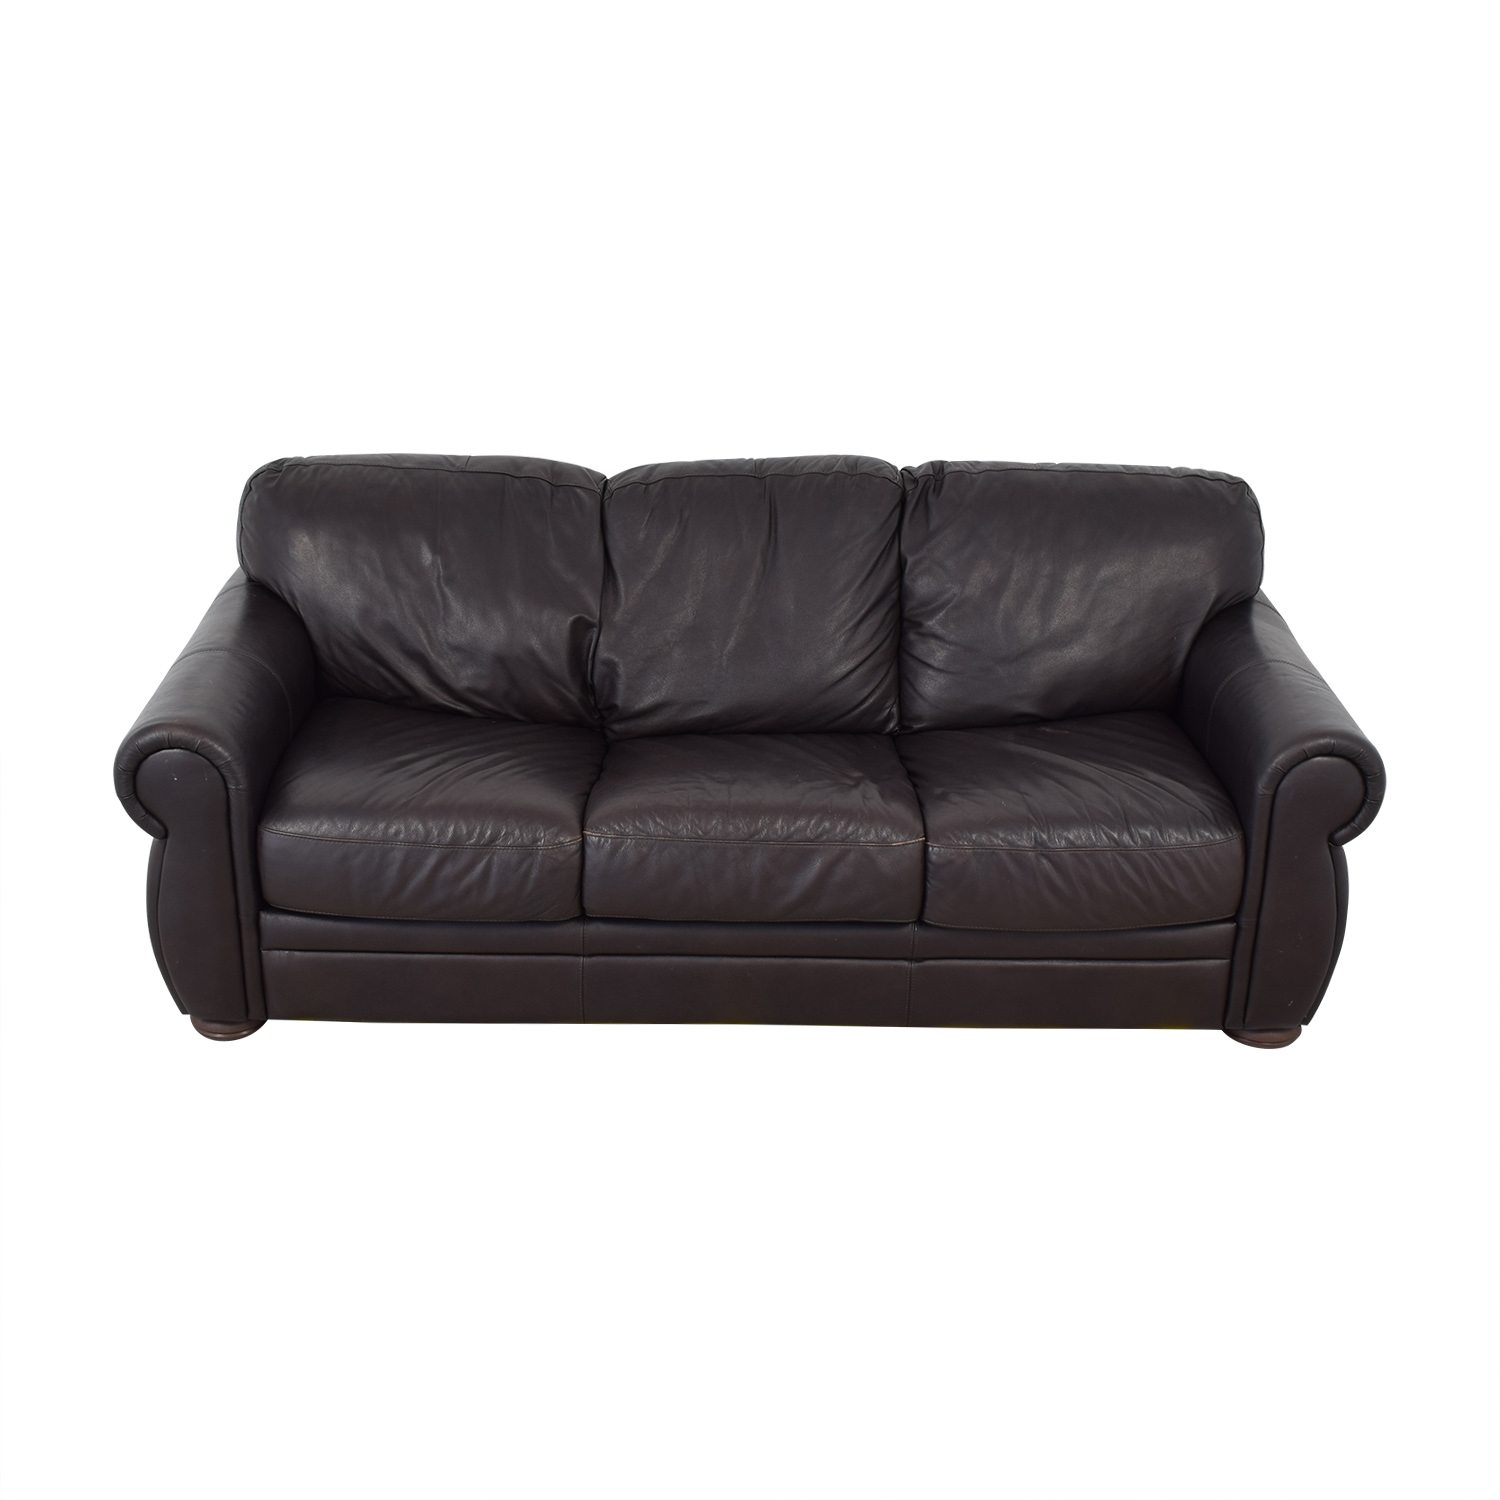 Raymour & Flanigan Raymour & Flanigan Leather Sleeper Sofa price